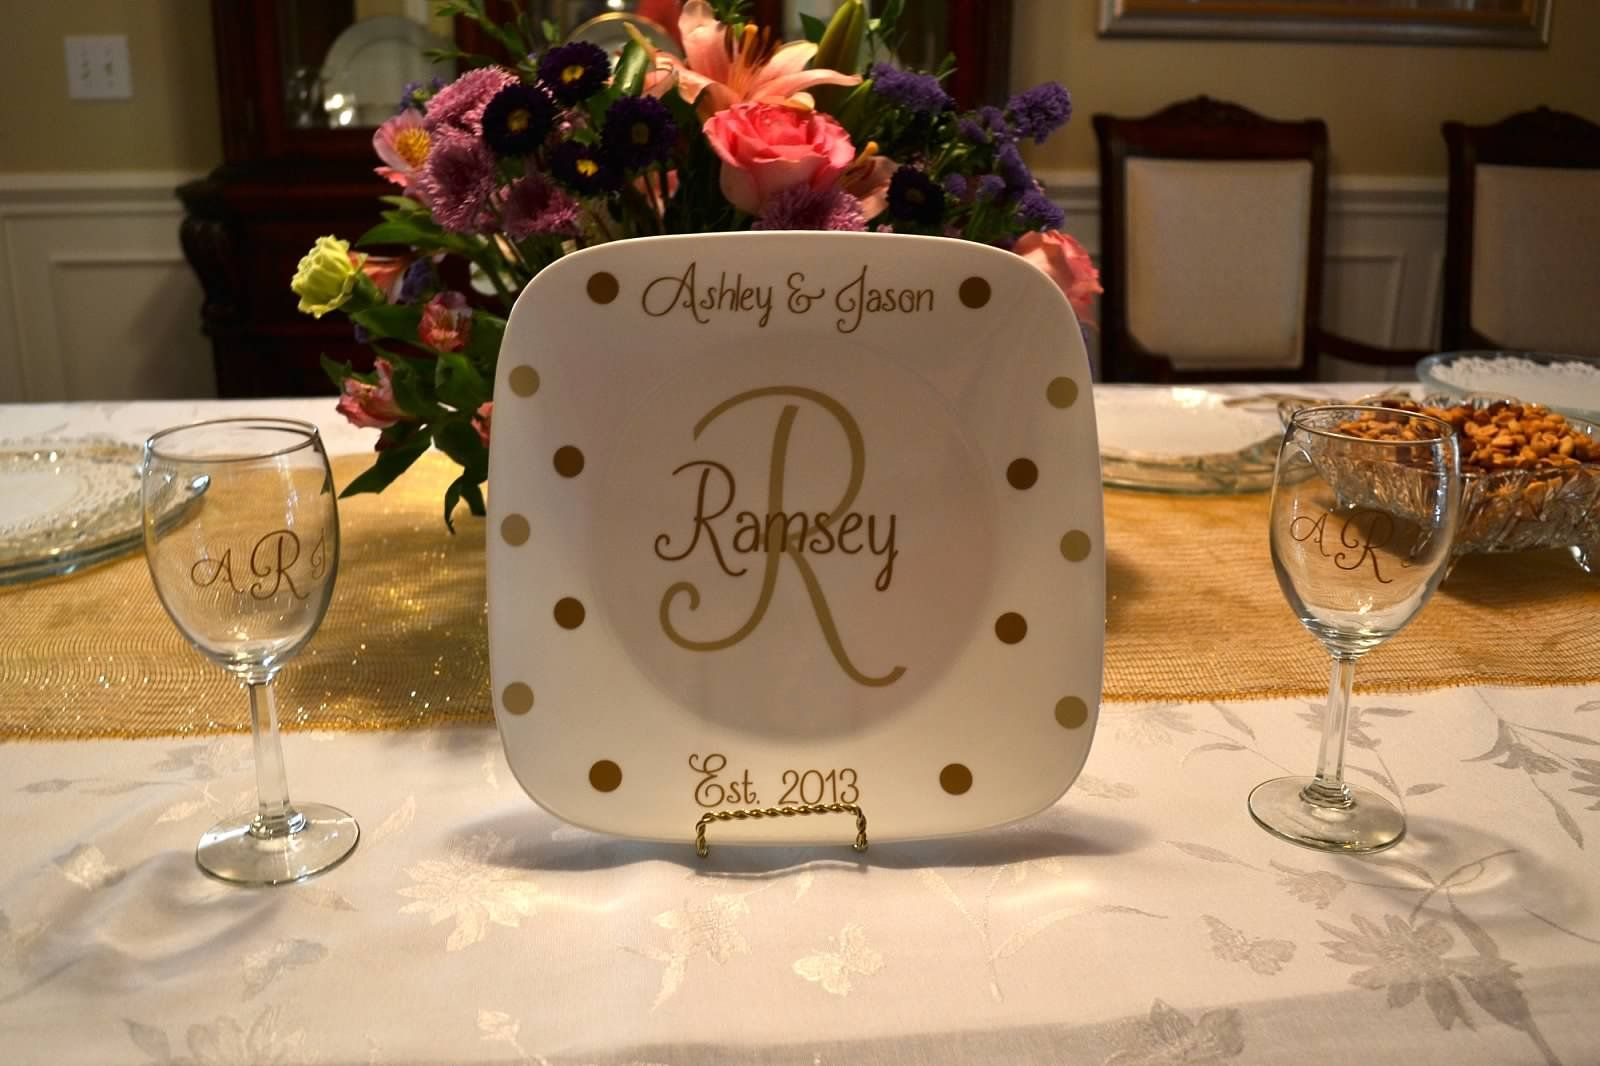 Personalized wedding gift set. Bought the plate at WalMart and the